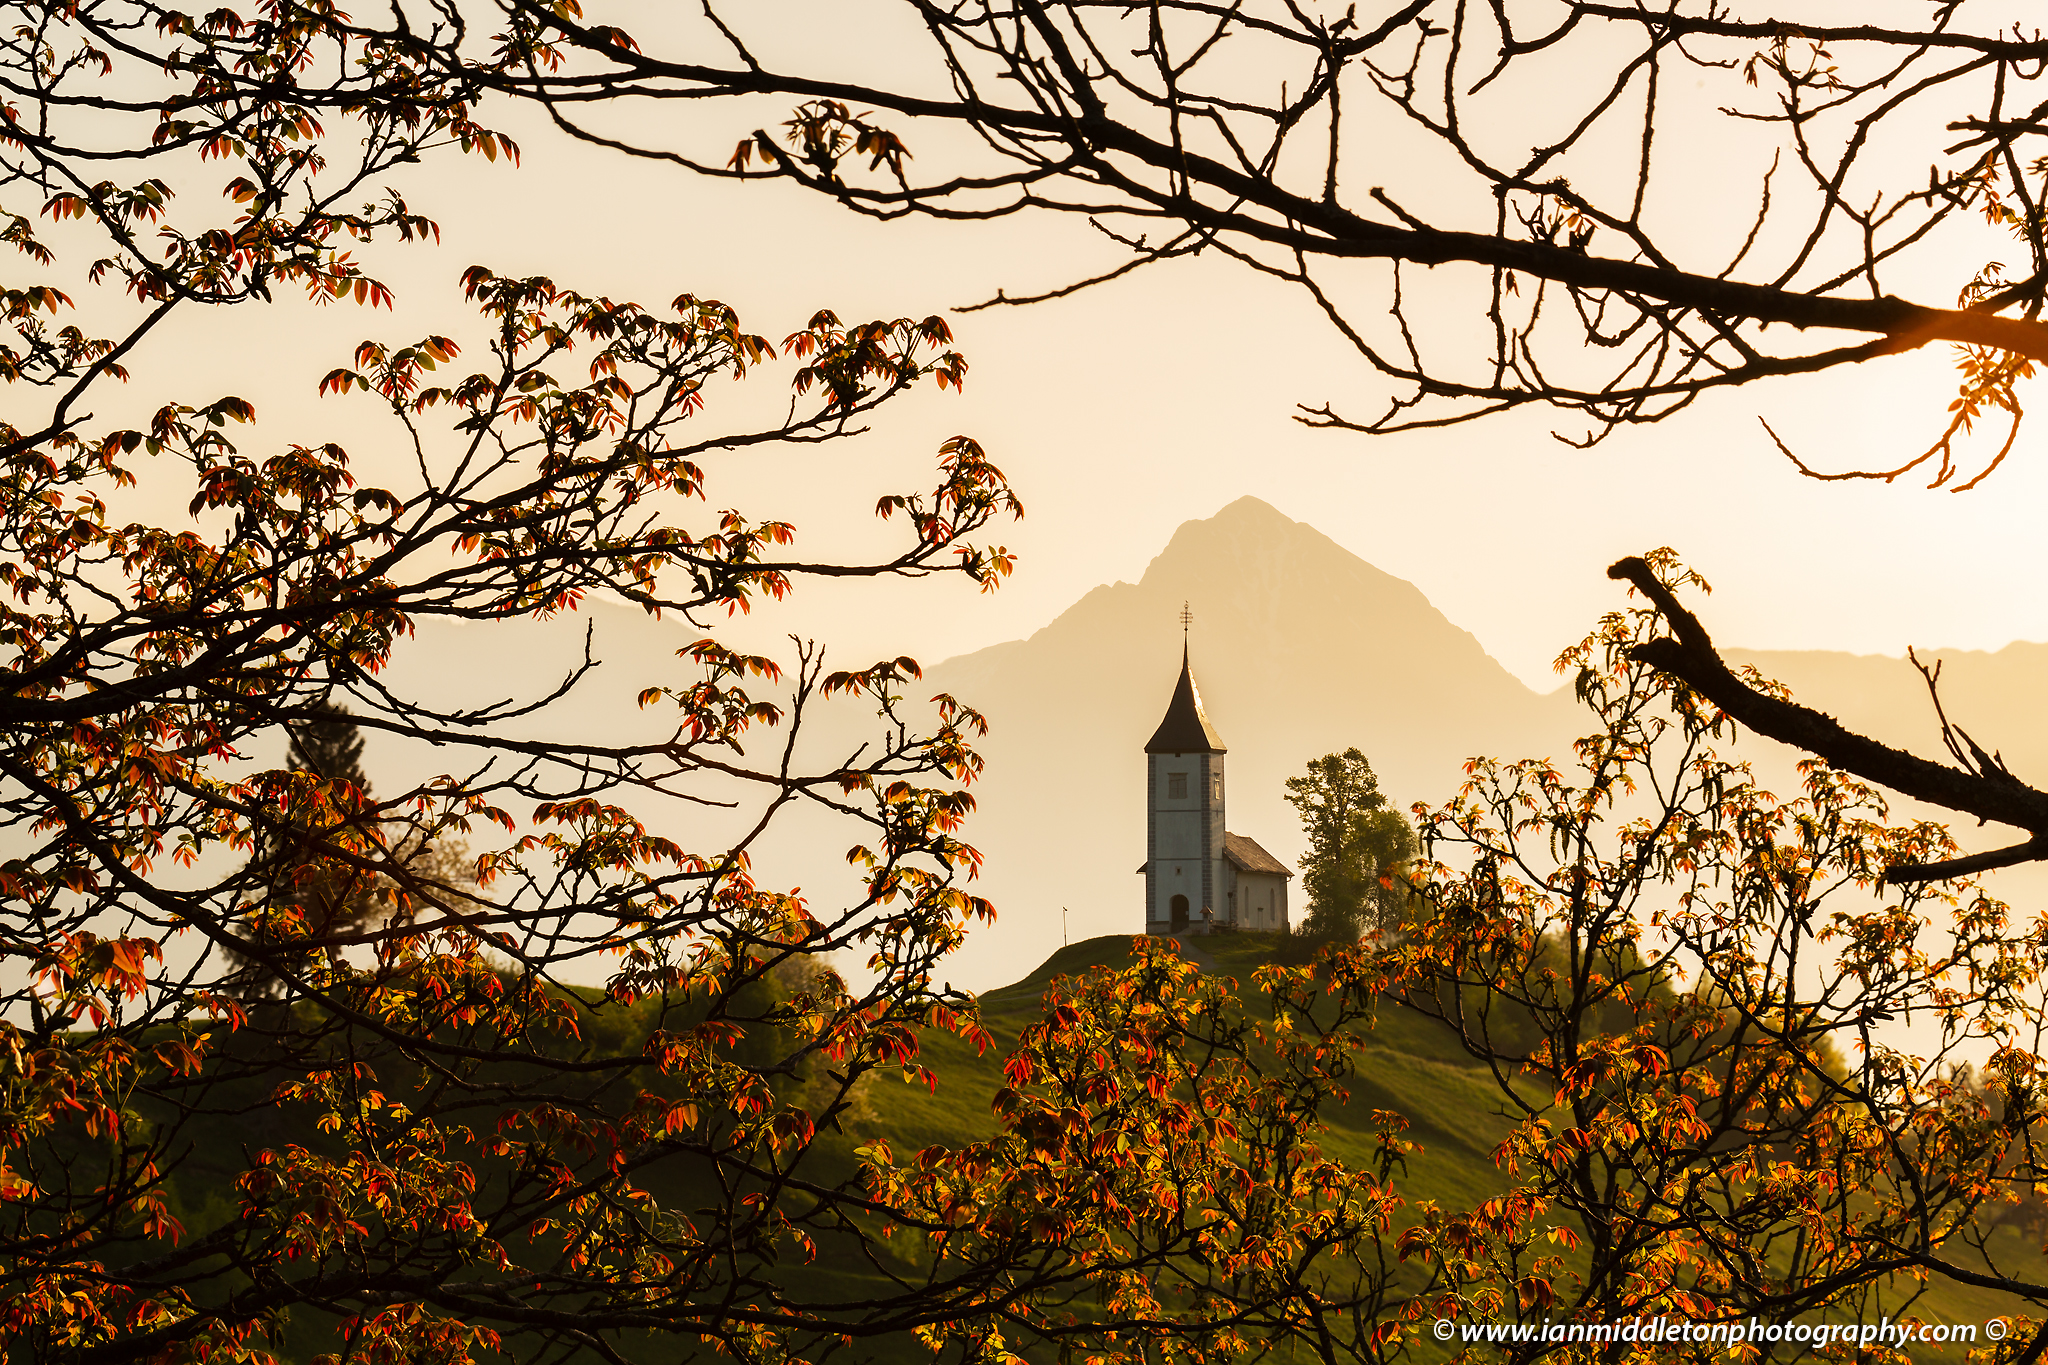 Sunrise at Jamnik church of Saints Primus and Felician, perched on a hill on the Jelovica Plateau with the kamnik alps and Storzic mountain in the background, Slovenia. Framed by some trees in Spring Bloom.